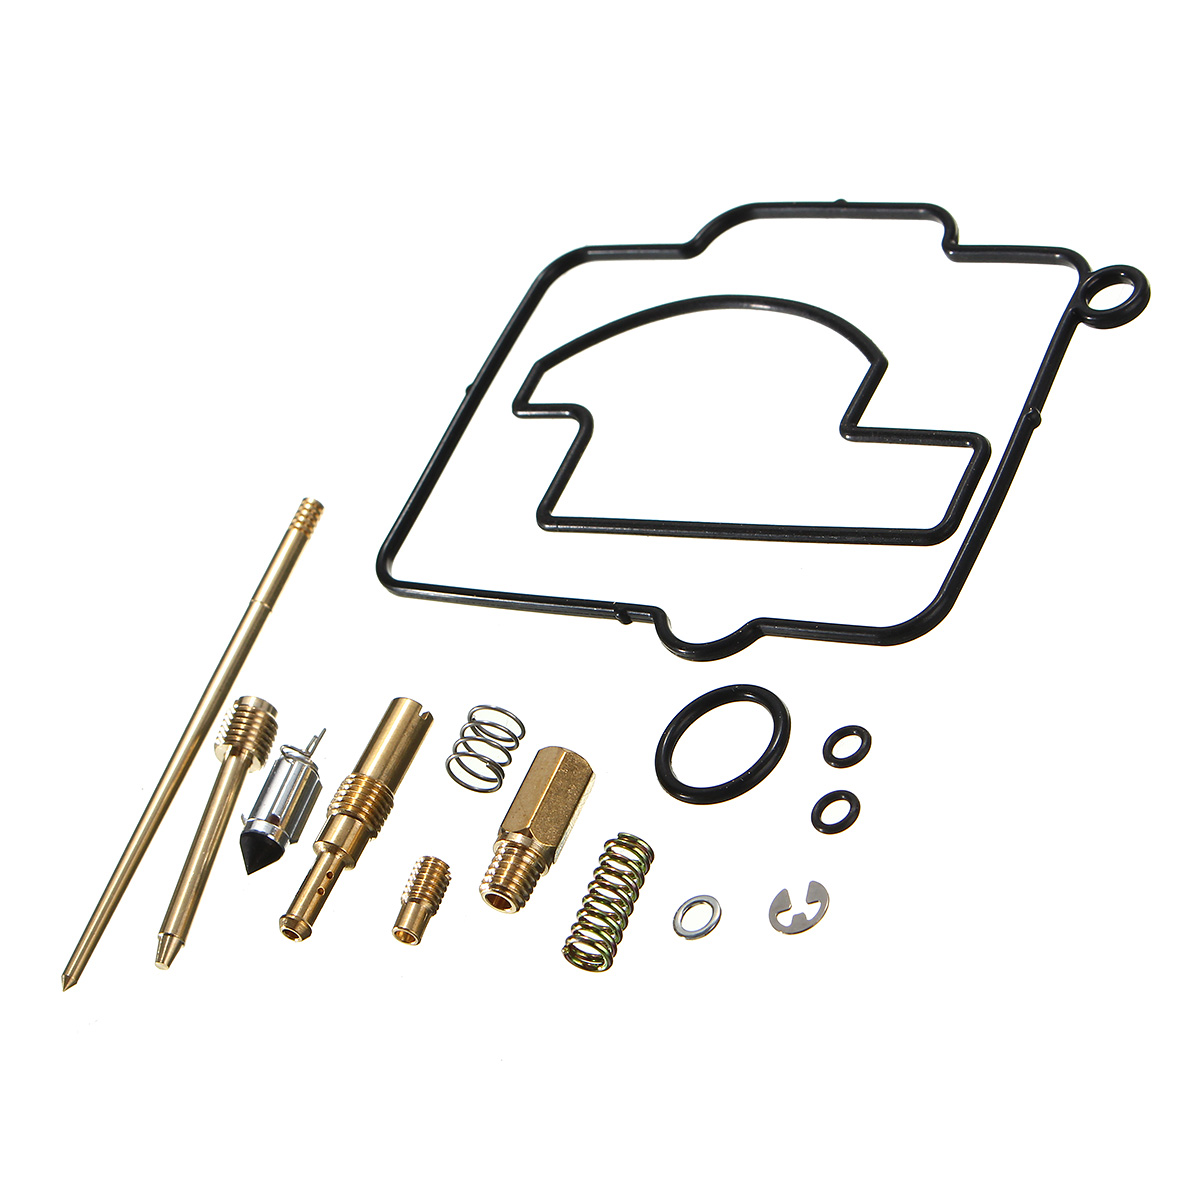 Carburetor Carb Rebuild Kit Repair For Yamaha YZ250 2000-2001